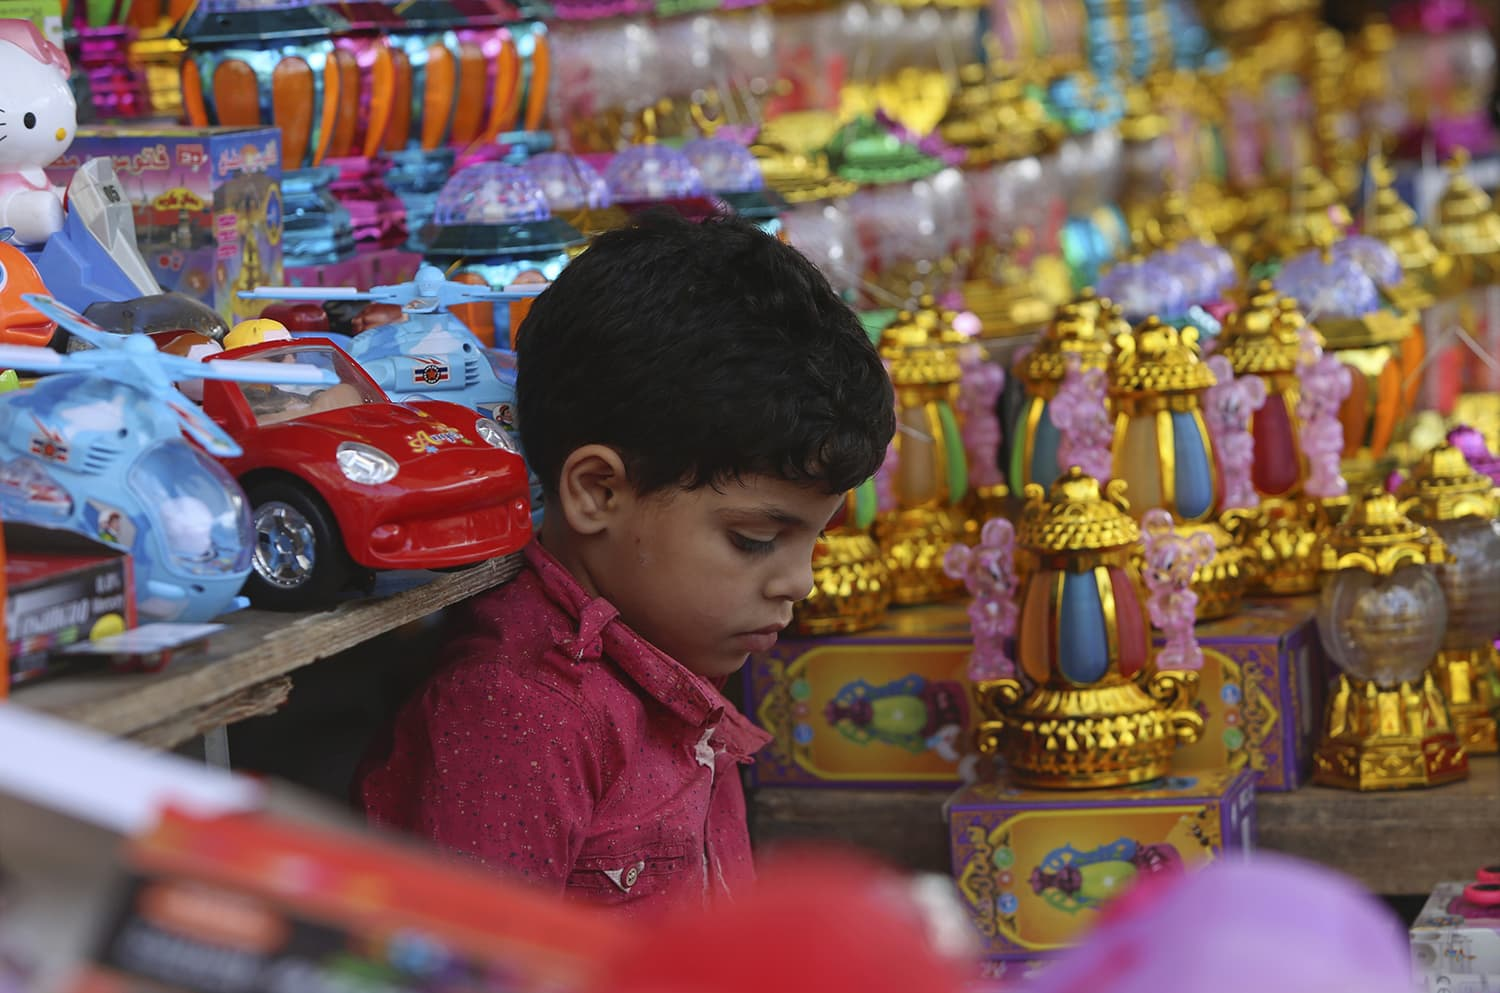 A Palestinian boy shops for a traditional lantern for the holy month of Ramazan, at the main market in Gaza City on Wednesday. — AP